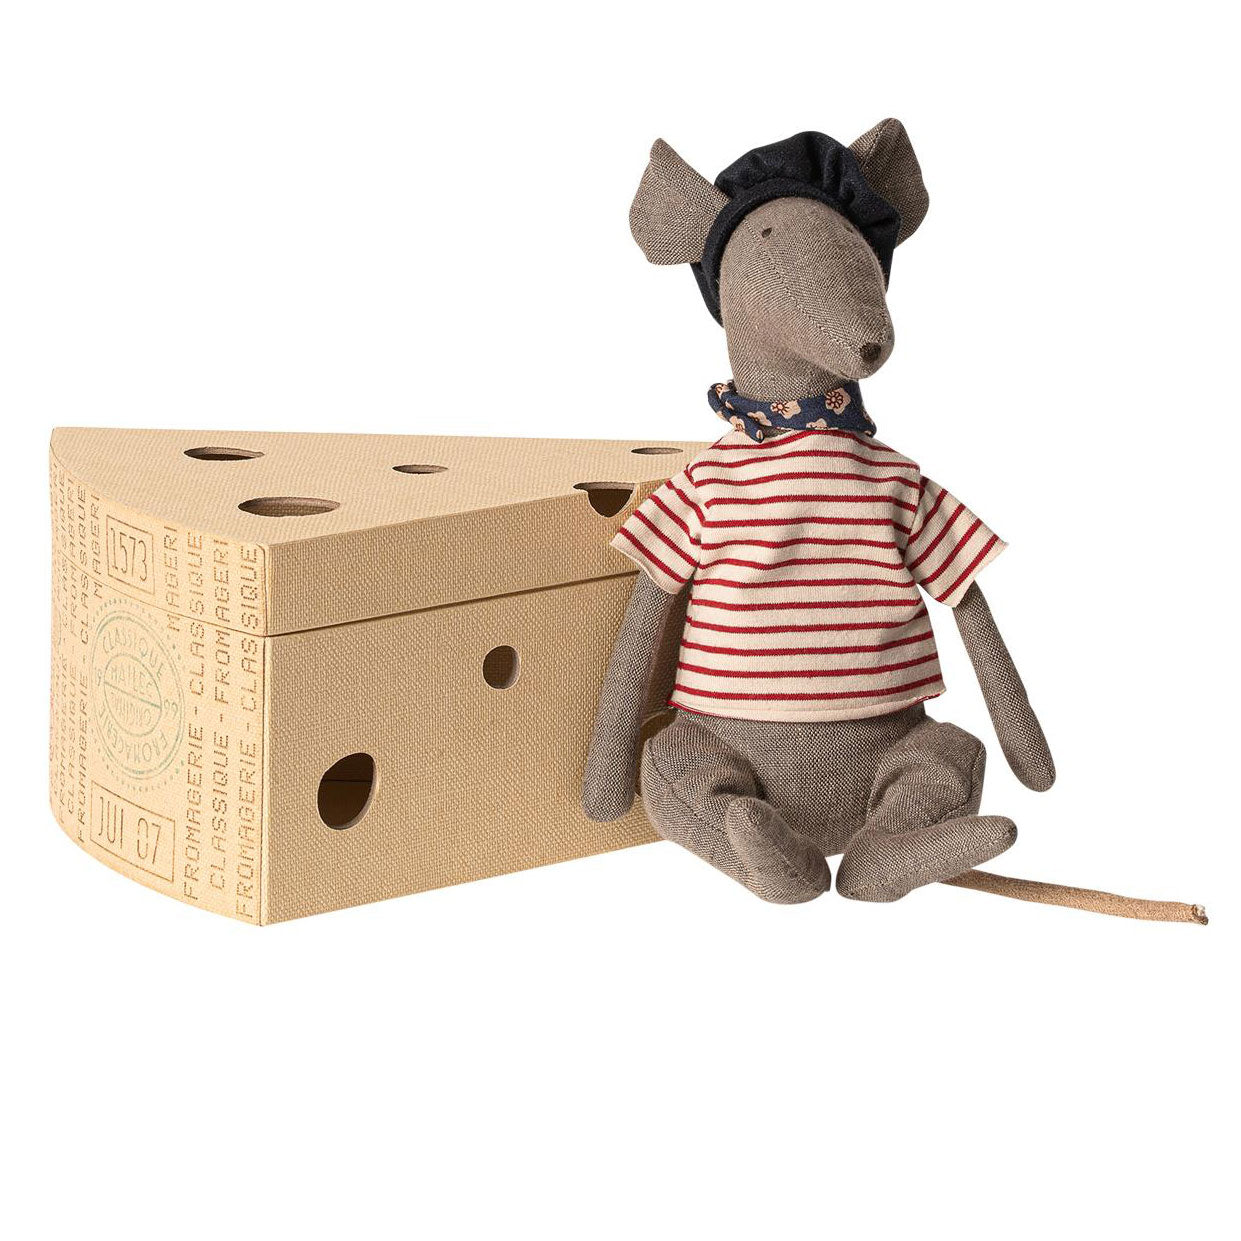 Maileg Rat in Cheese Box at Bonjour Baby Baskets